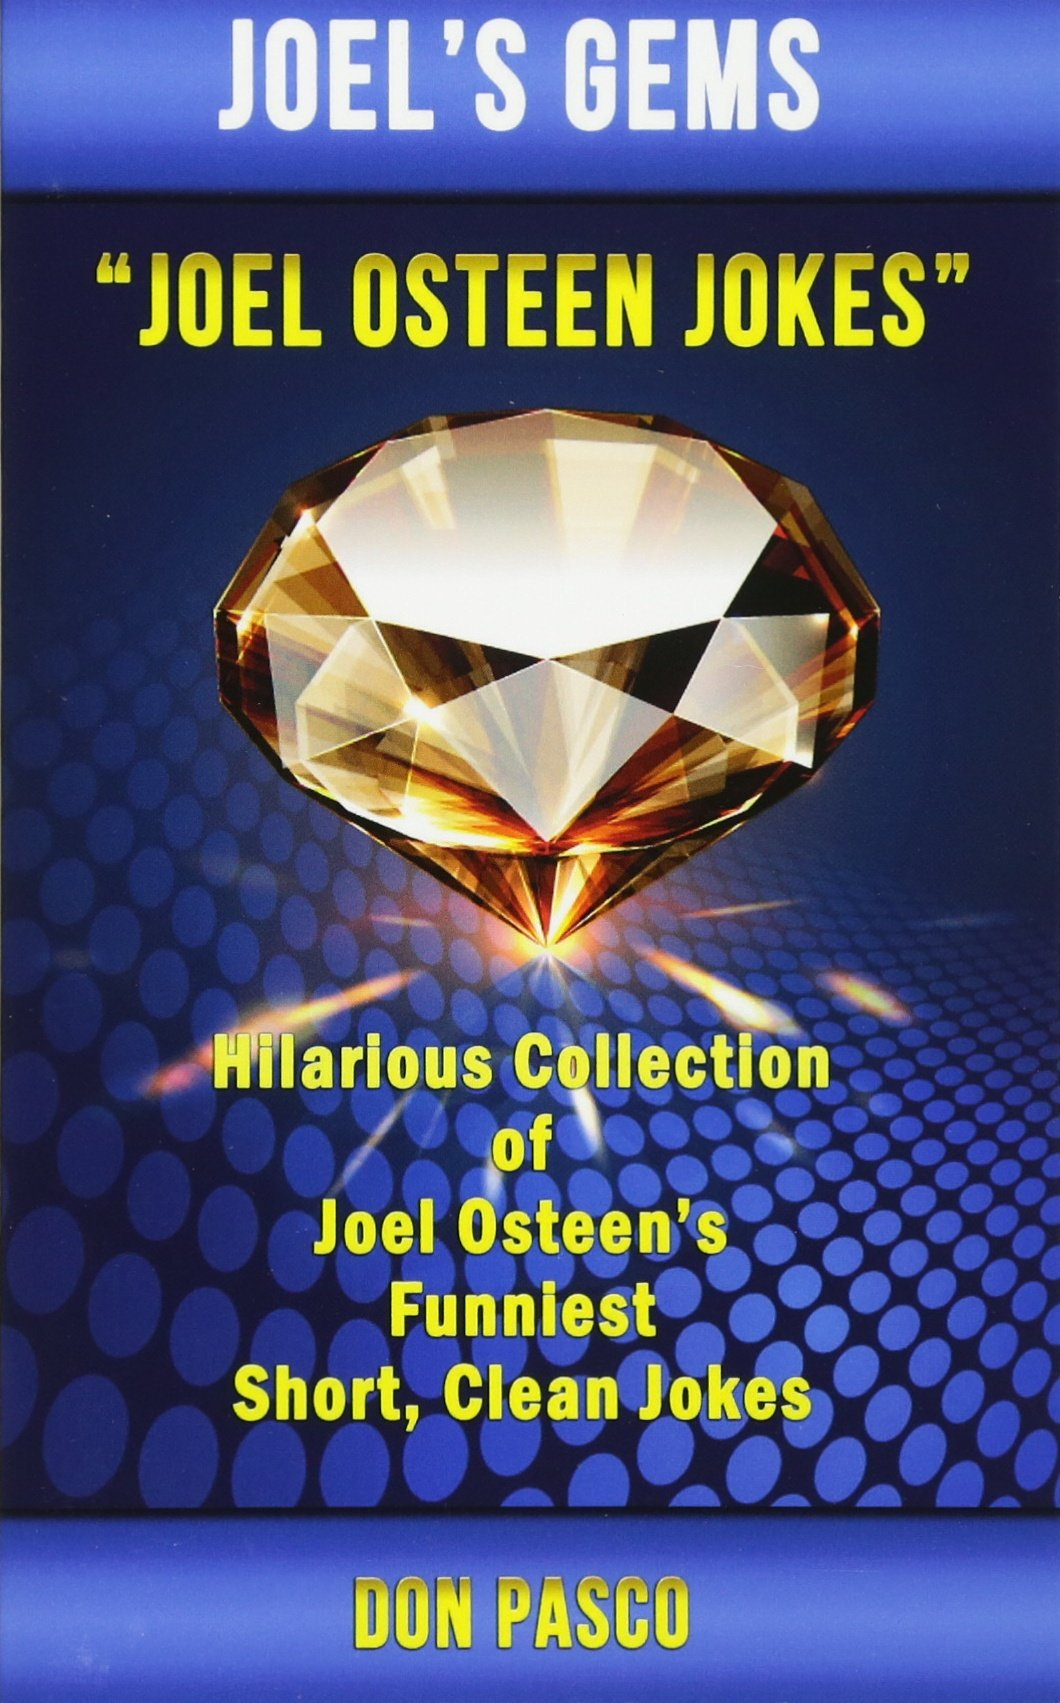 Joel Osteen Jokes: Hilarious Collection of Joel Osteen's Funniest